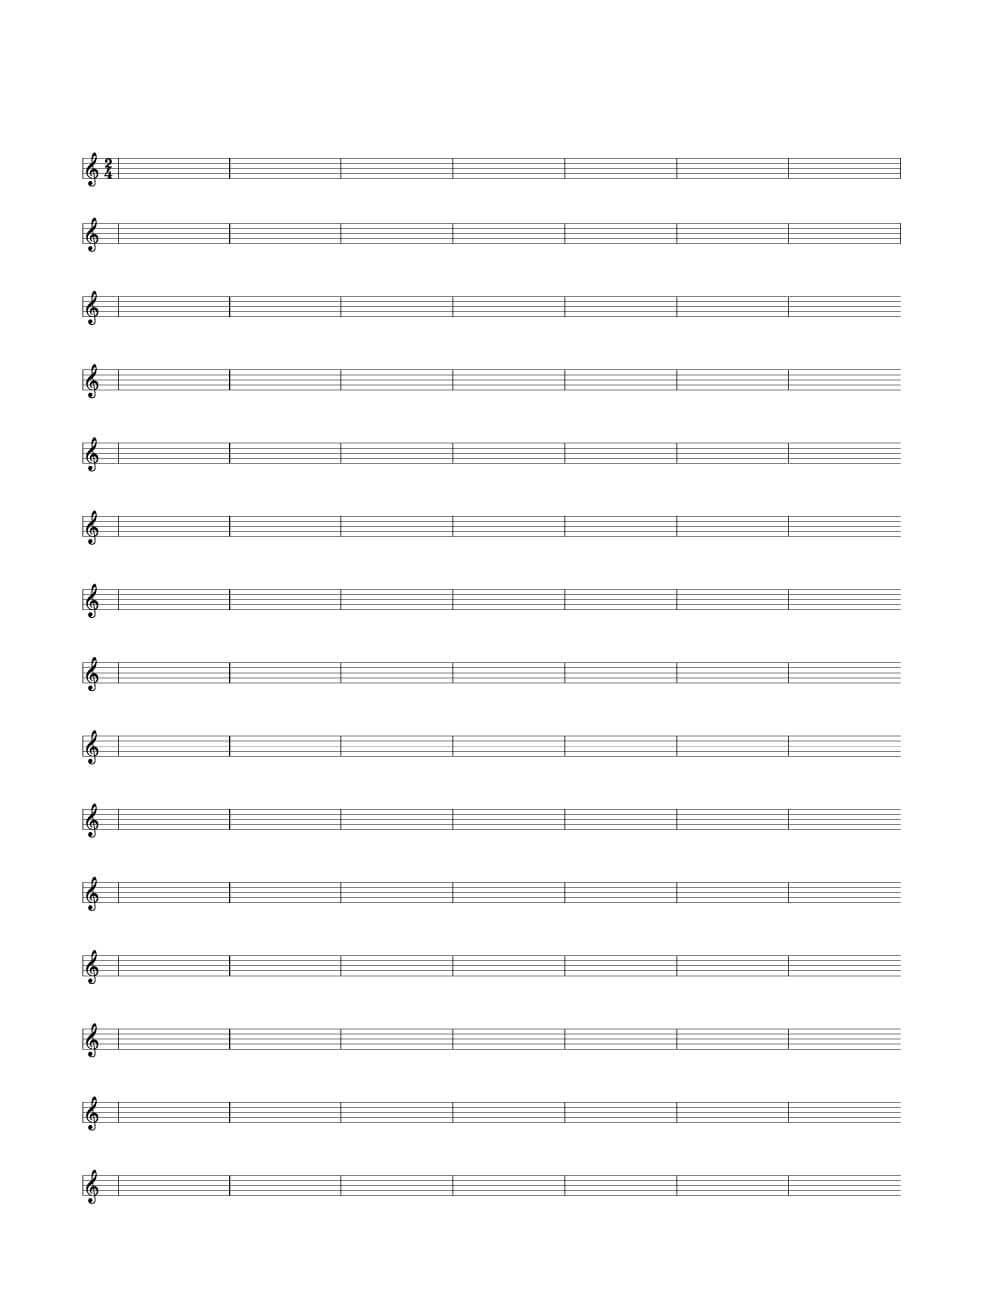 2/4 Time Signature Single Bar Blank Sheet Music | Woo! Jr For Blank Sheet Music Template For Word